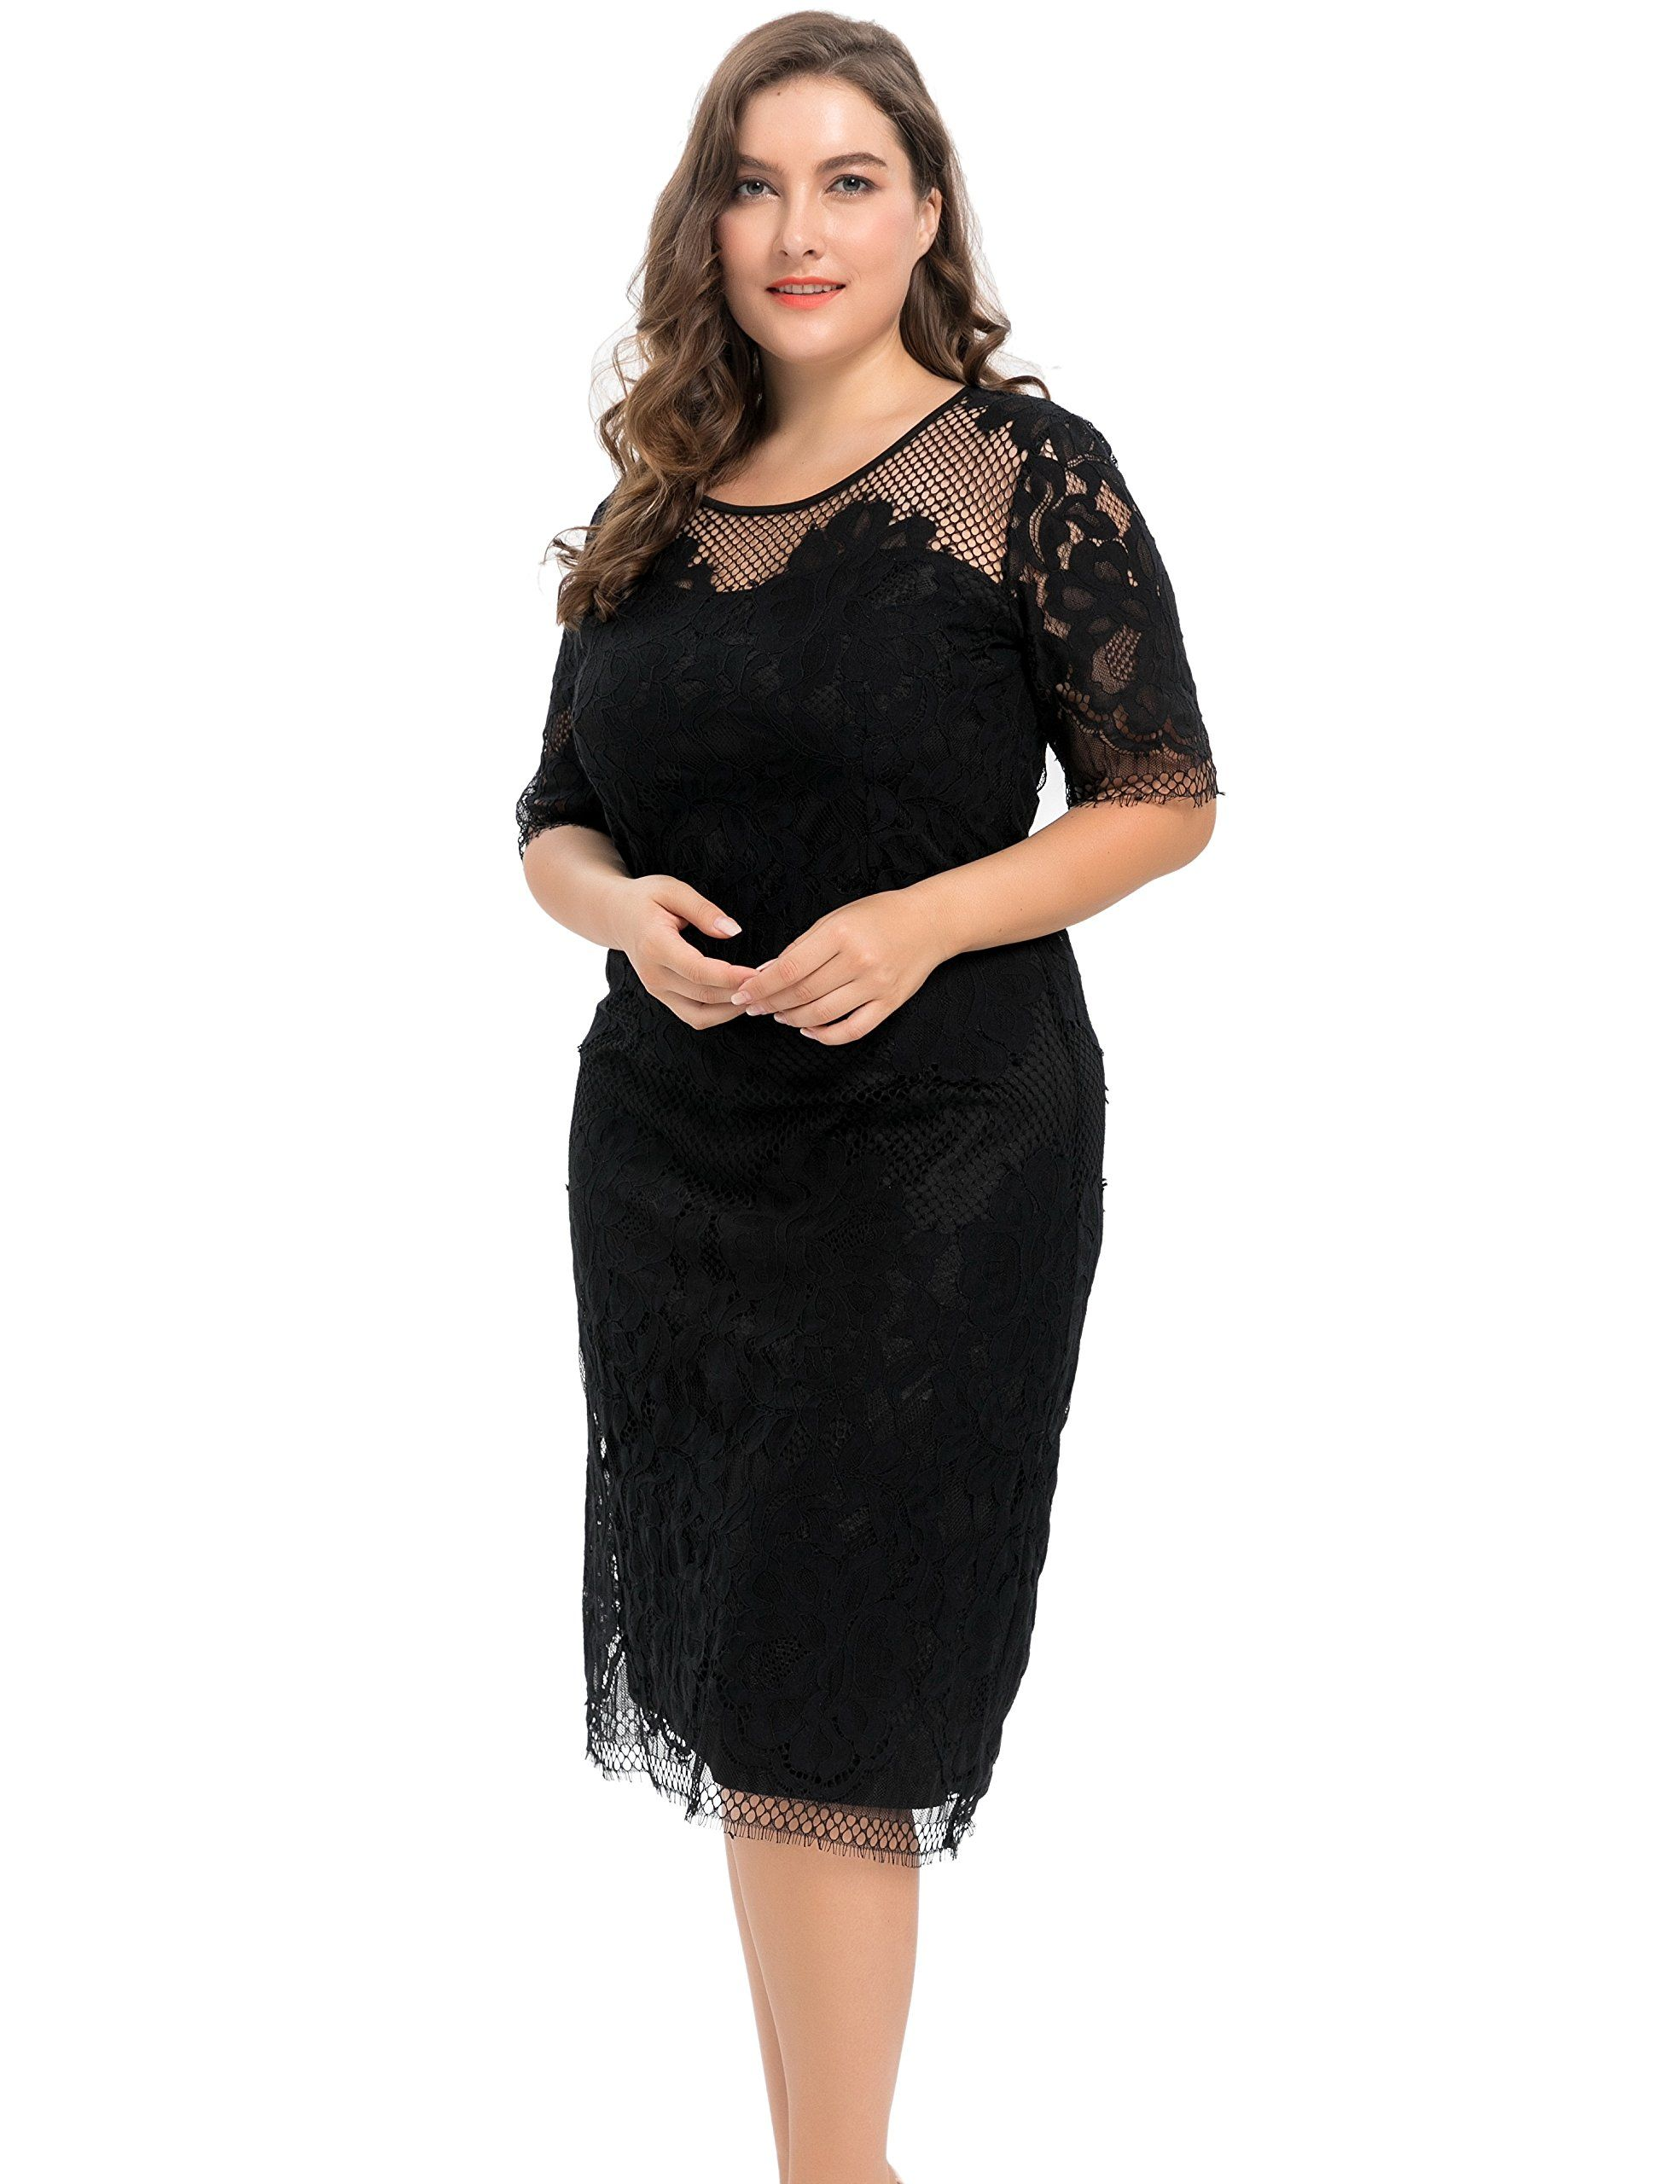 d35a4957bf Chicwe Women s Plus Size Lined Floral Lace Dress - Knee Length Casual Party  Cocktail Dress - Top Plus Size Models And Celebrities In The World - Plus  Size ...